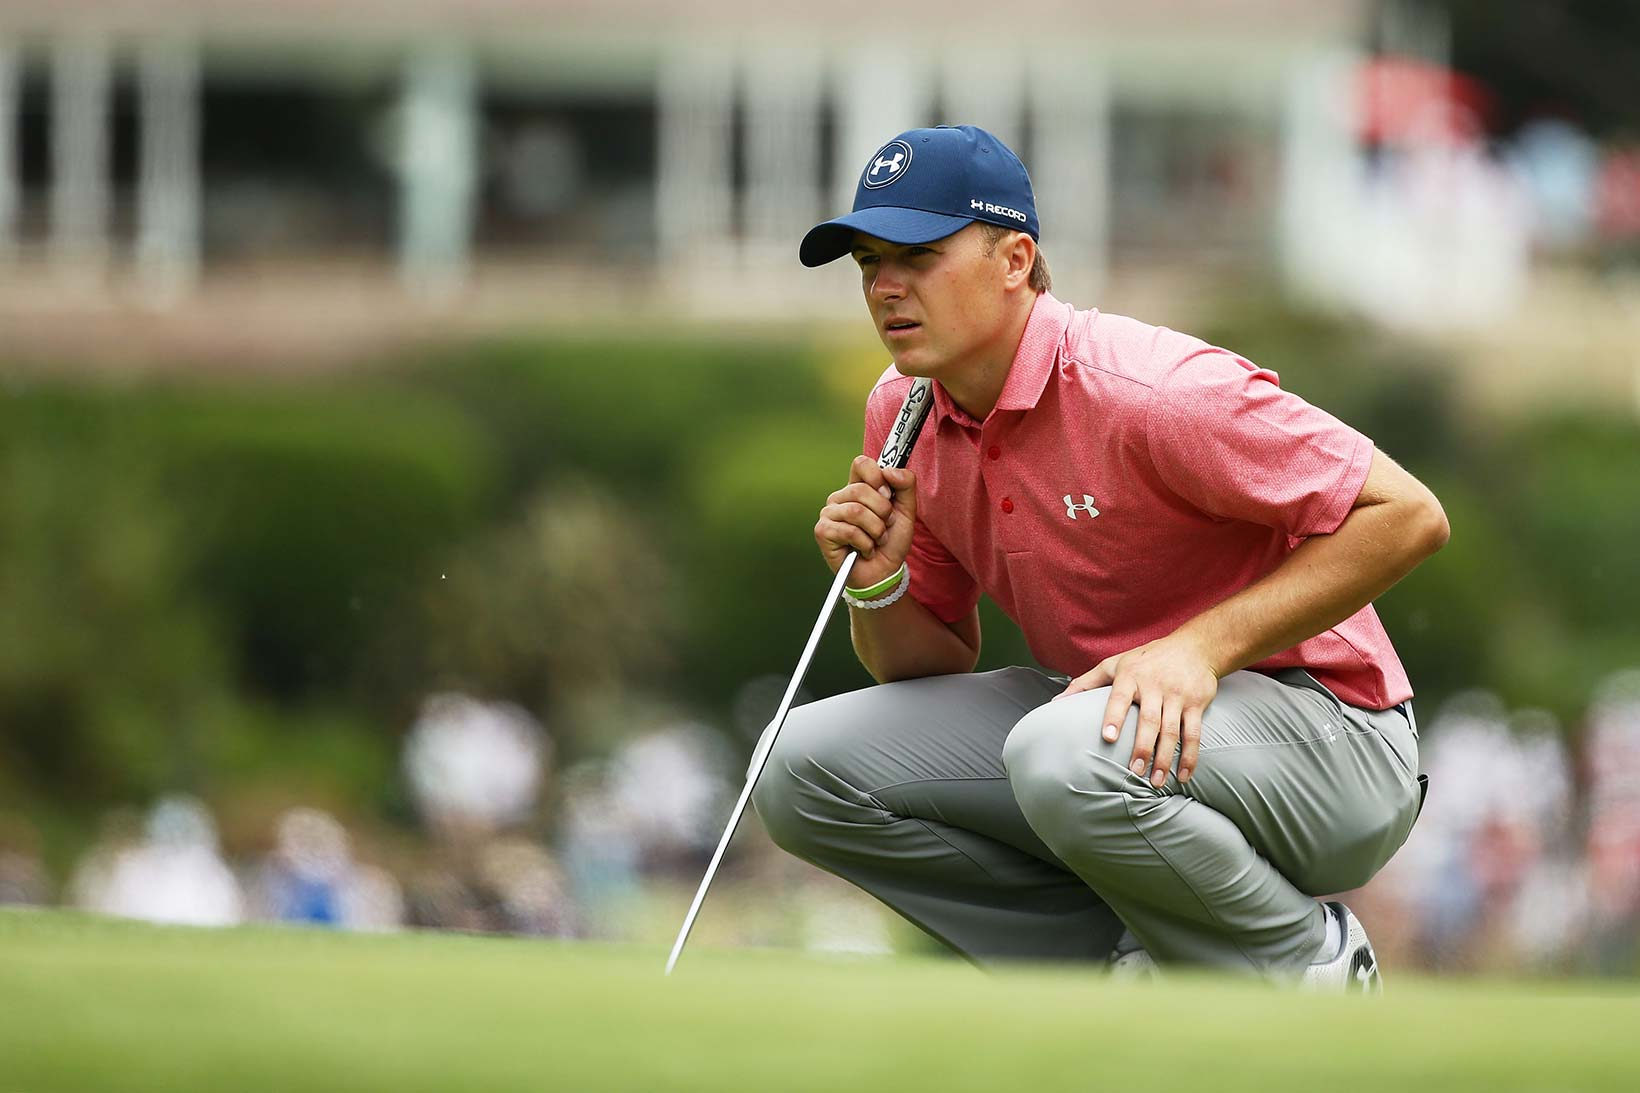 2016 Emirates Australian Open: Round 3 - Lining Up a Putt on the First Green